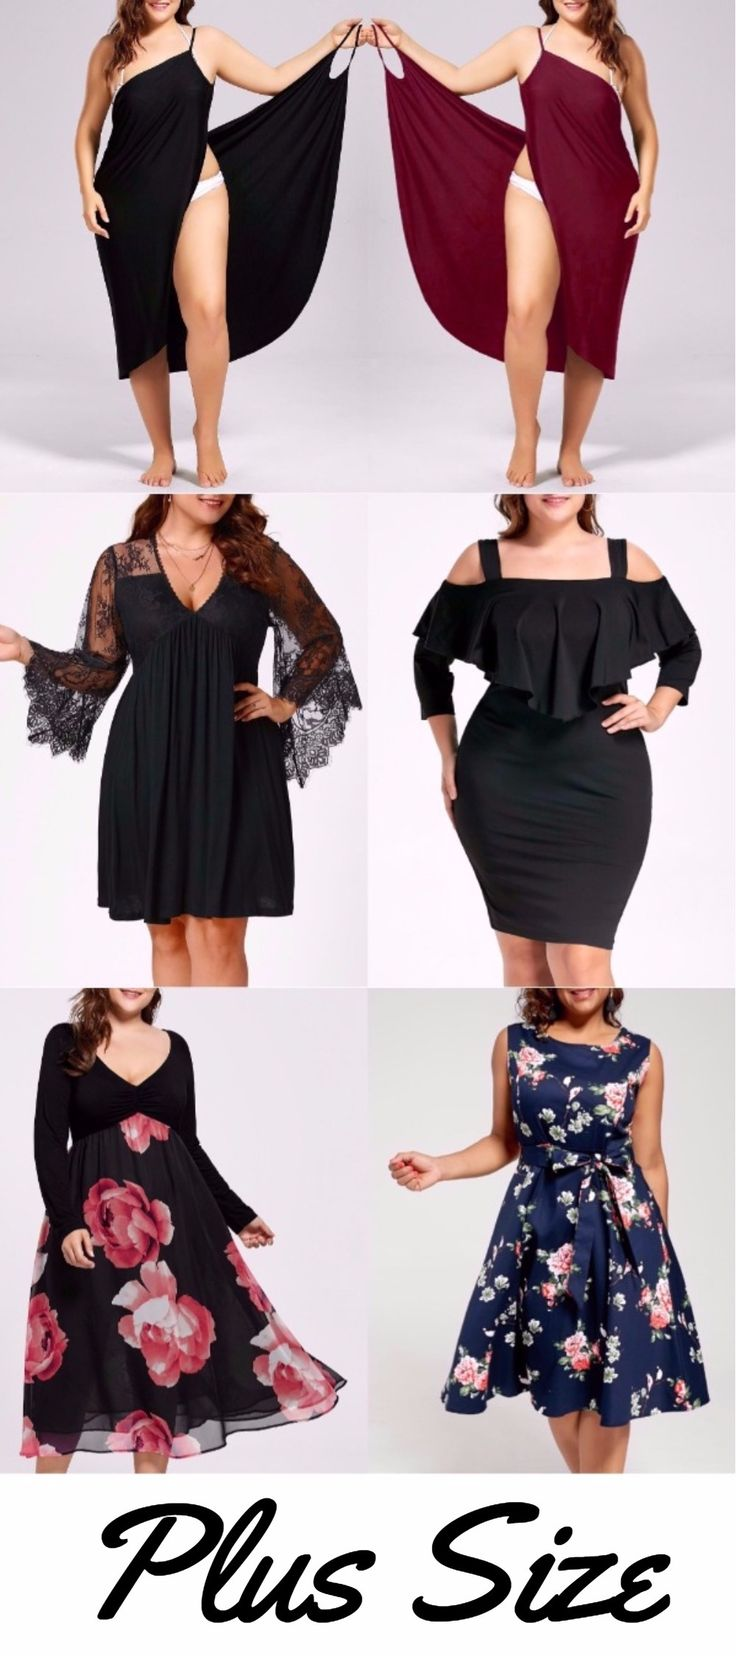 #PlusSize #Dress Up To 89% OFF | Start From $9.99 | Sammydress.com